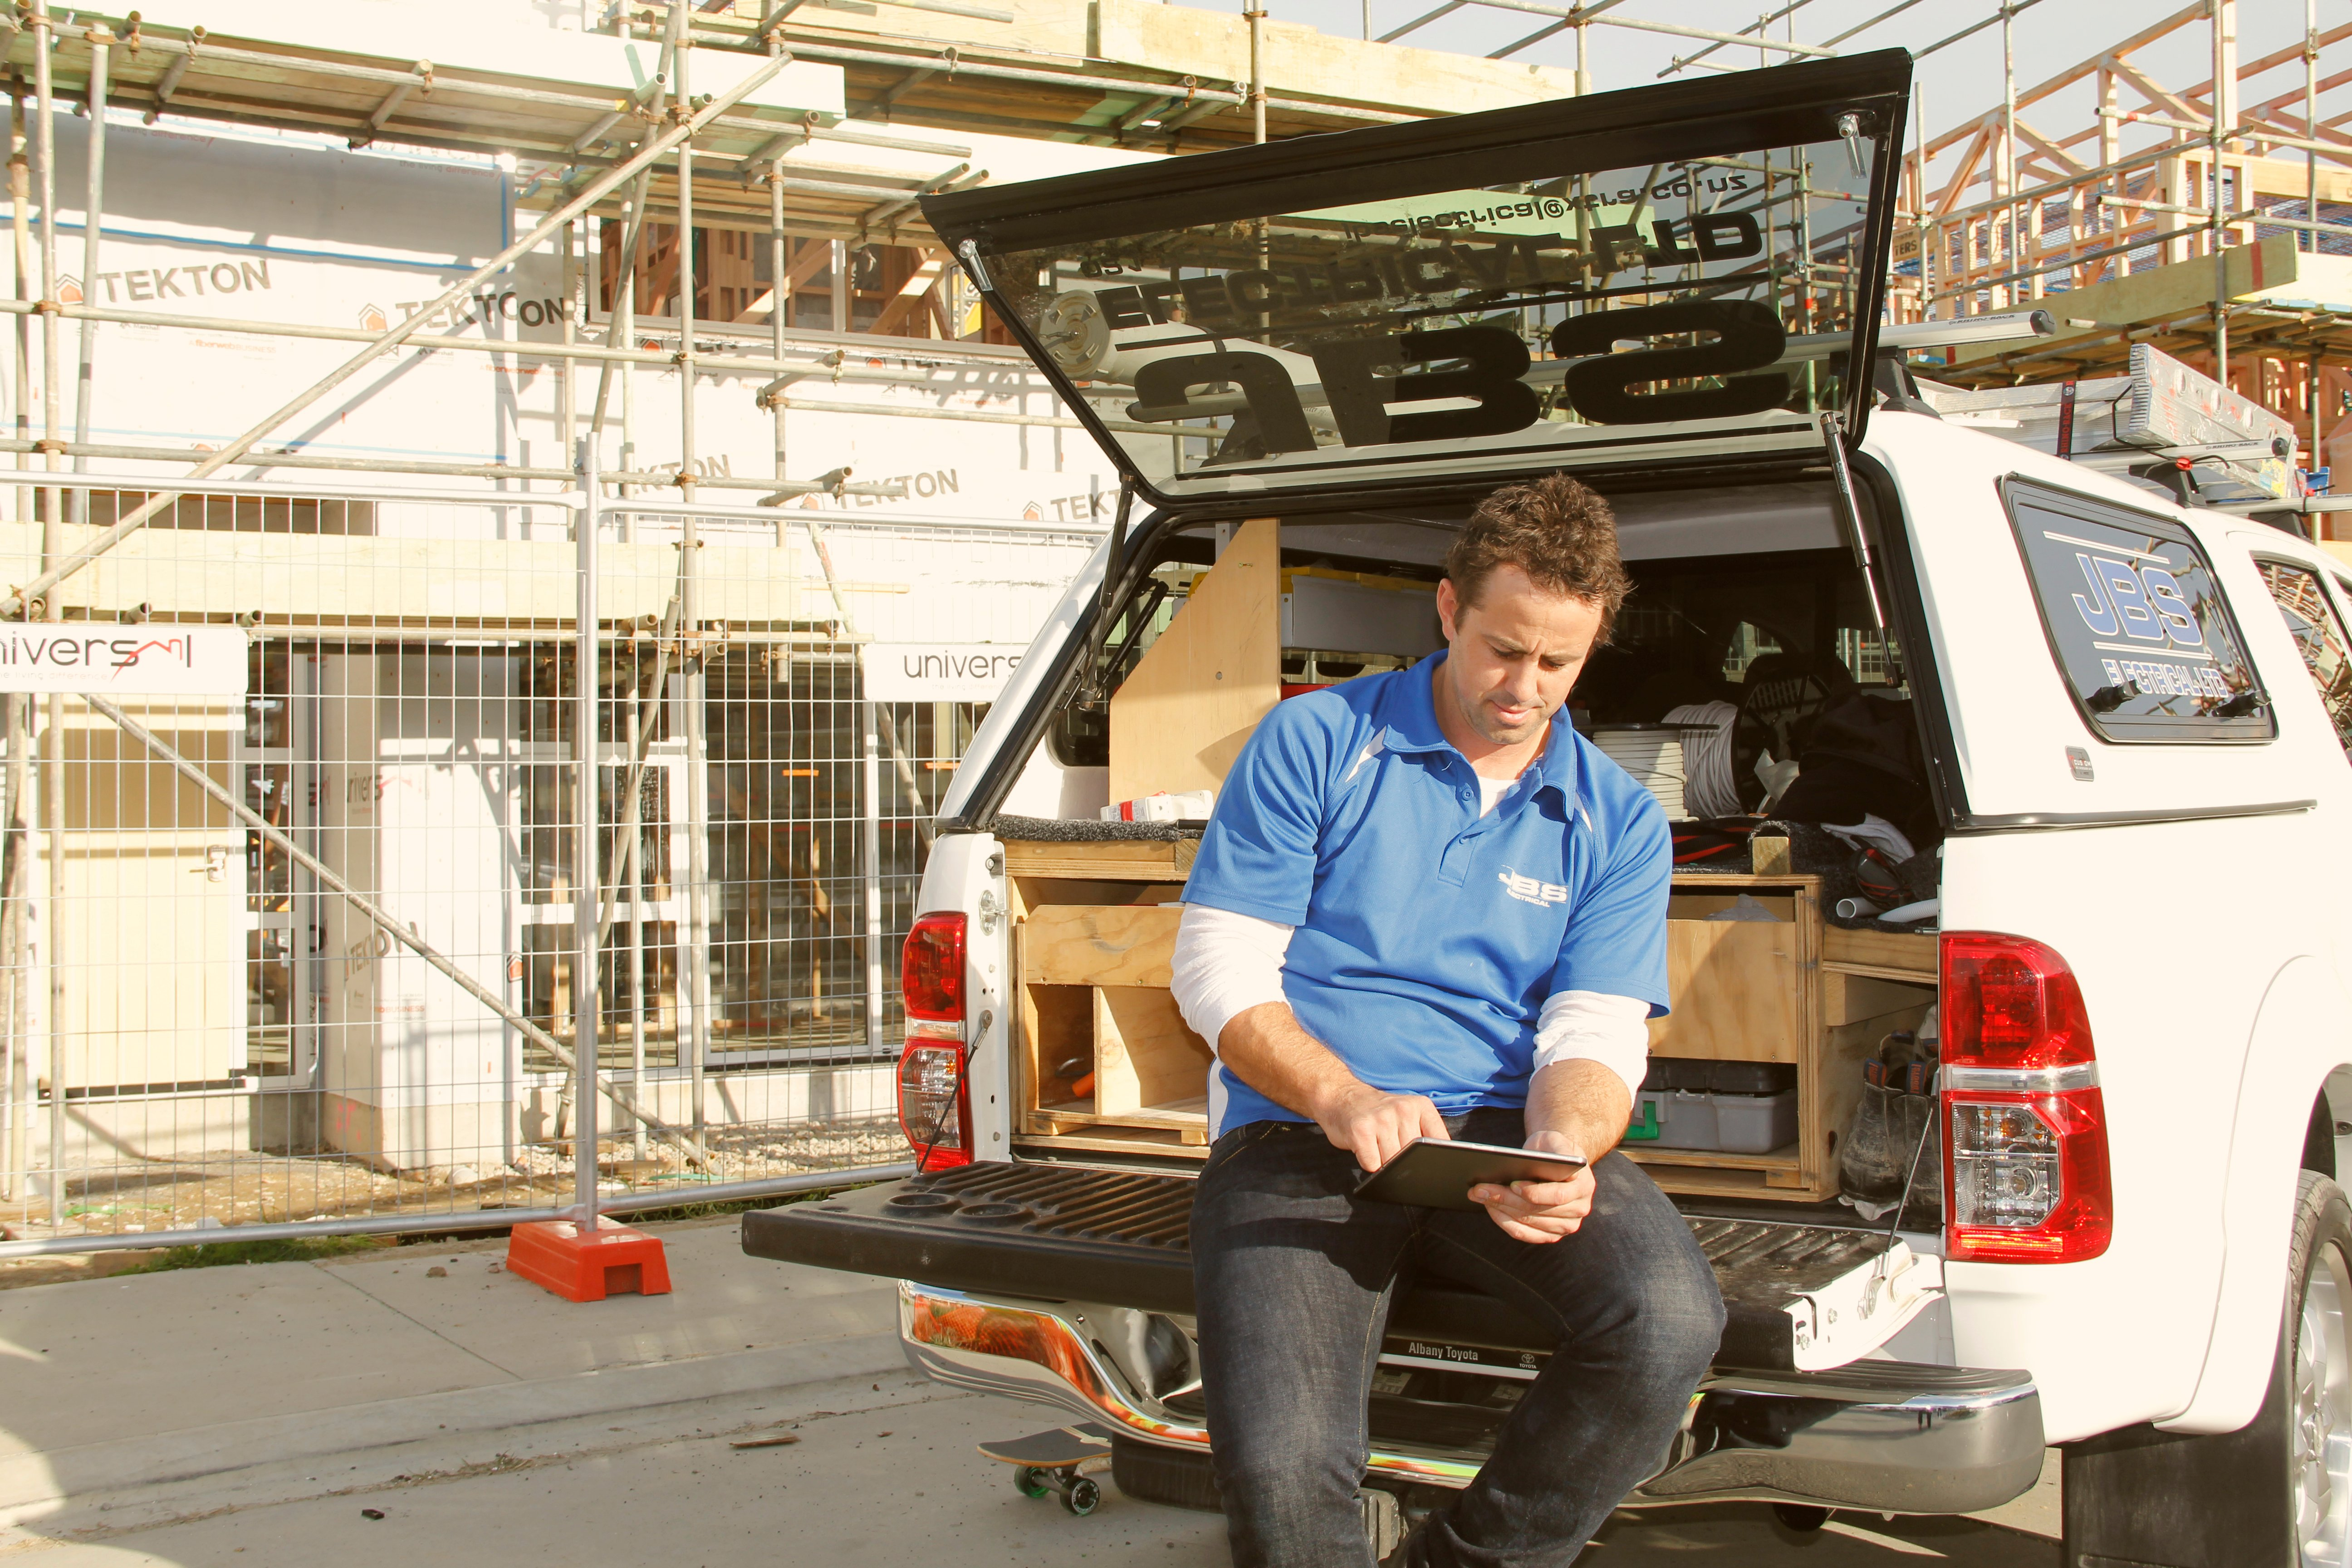 tradie_with_tablet_3